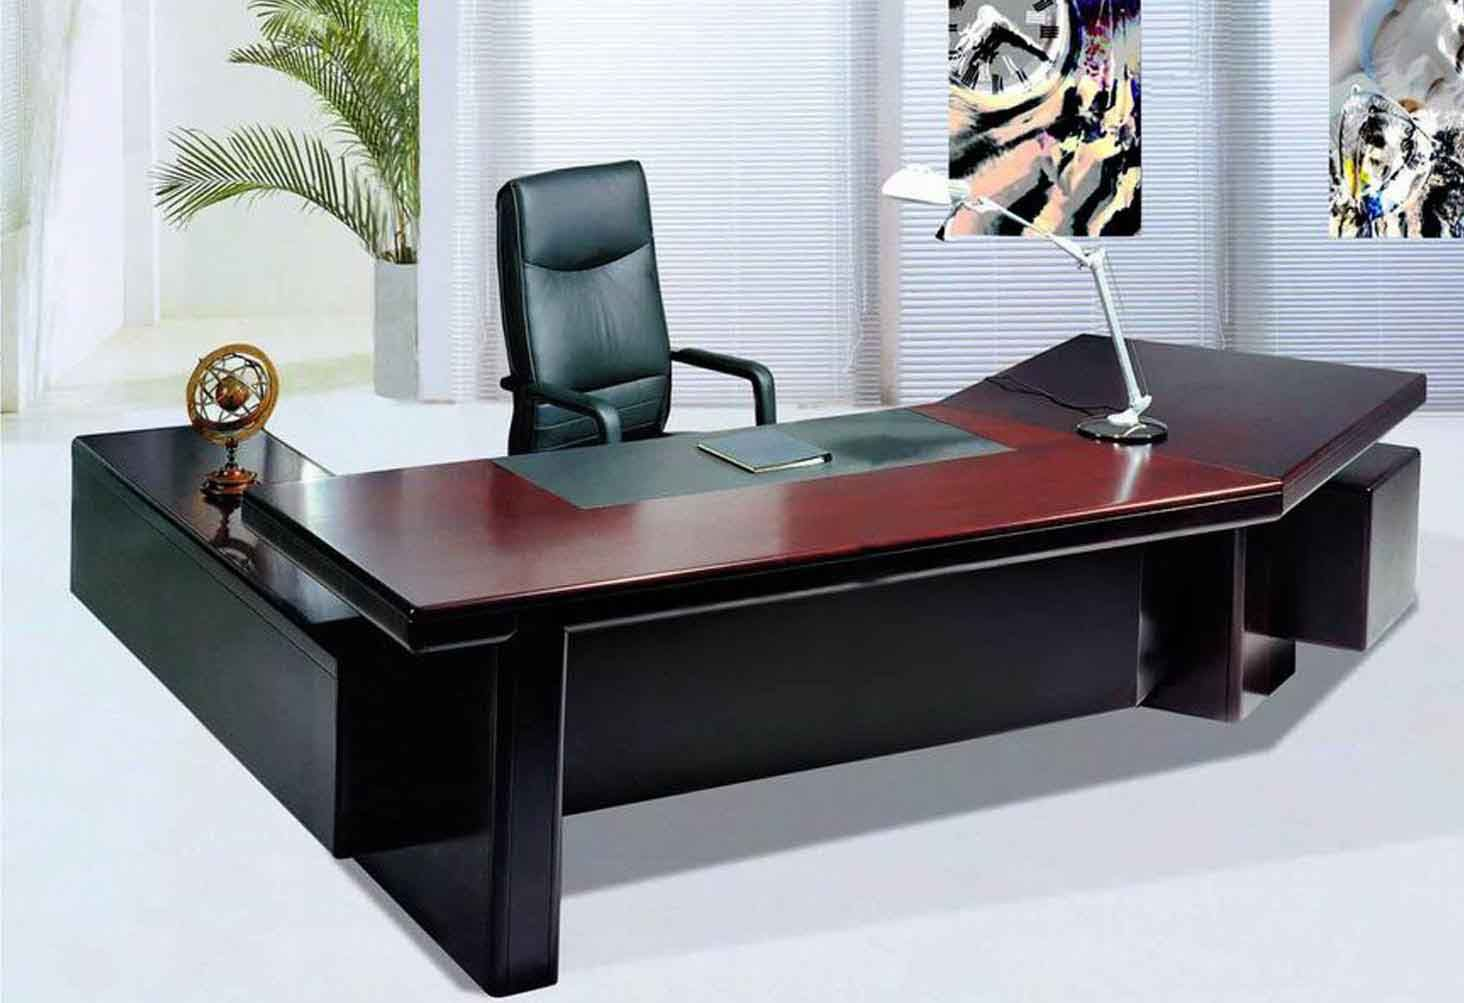 Bedroom Desk Furniture Model Plans foldable office desk - home office furniture sets check more at